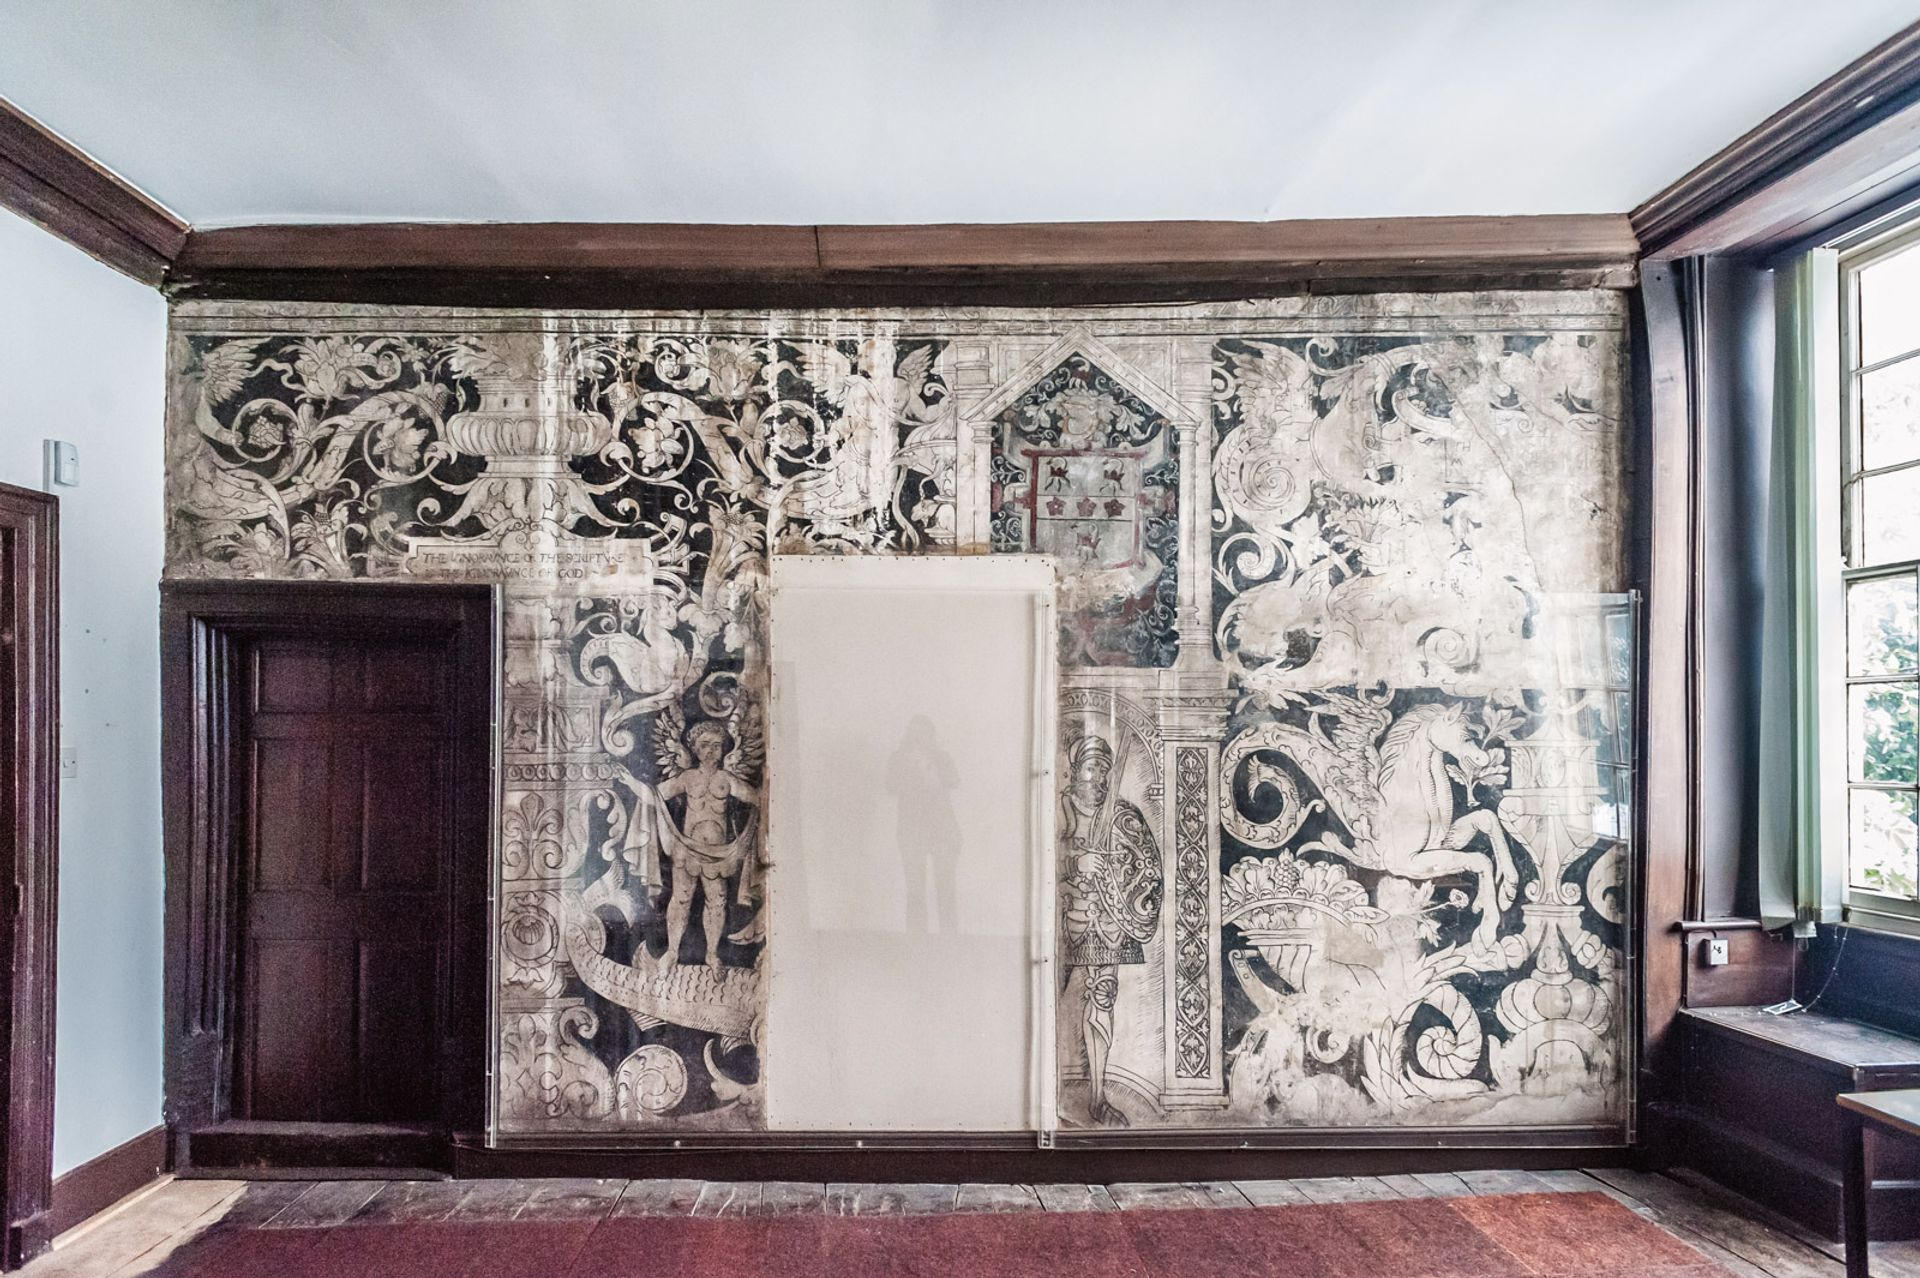 The Charterhouse in Coventry is the only one in England to survive the Dissolution of the Monasteries with its original interiors and wall paintings Courtesy of Historic Coventry Trust